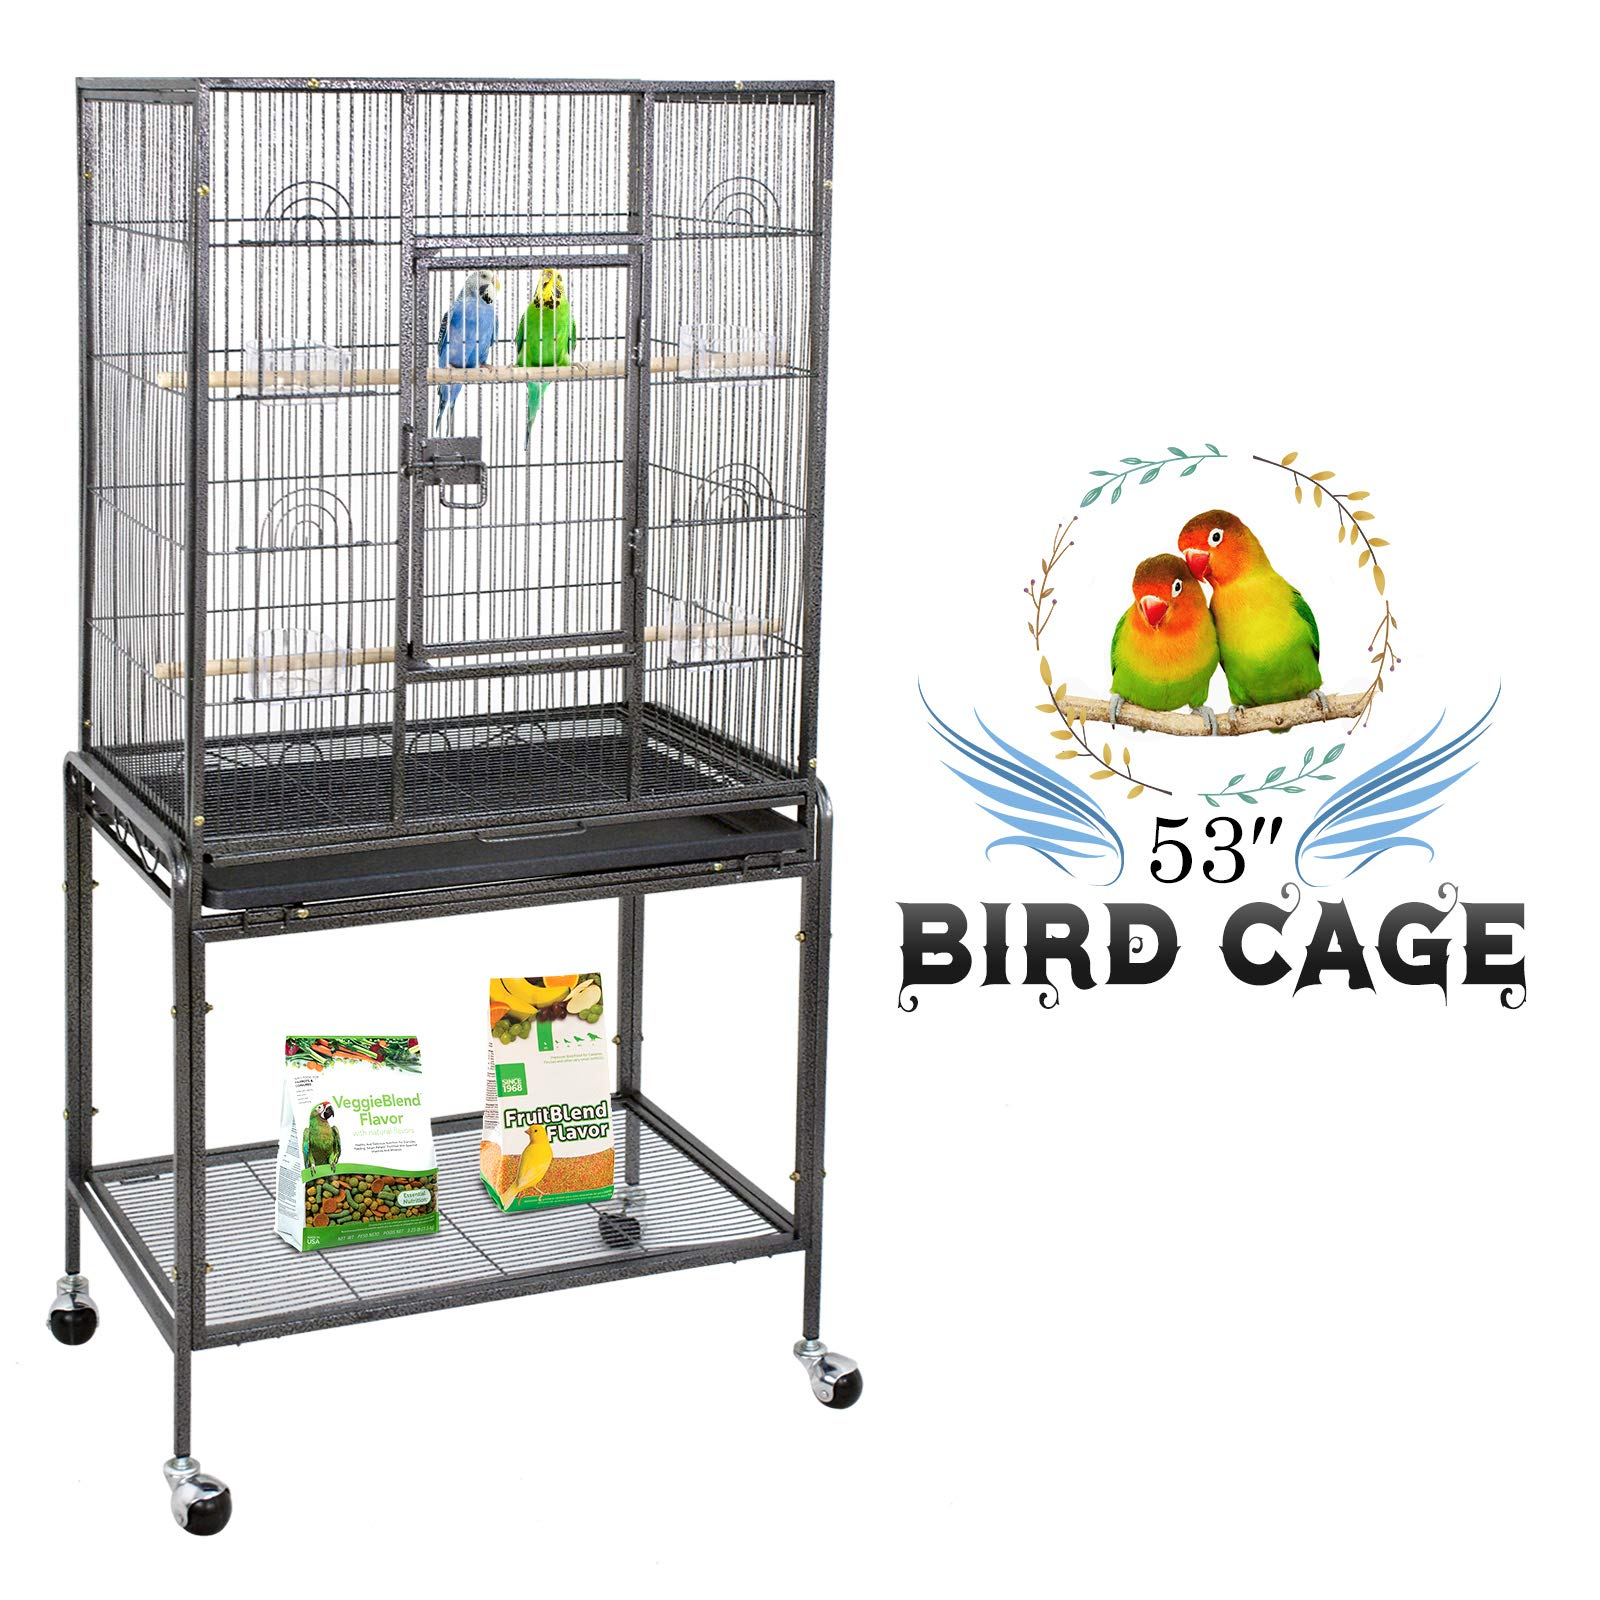 ZENY Bird Cage with Stand Wrought Iron Construction 53-Inch Pet Bird Cage Play Top Parrot Cockatiel Cockatoo Parakeet Finches Birdcage by ZENY